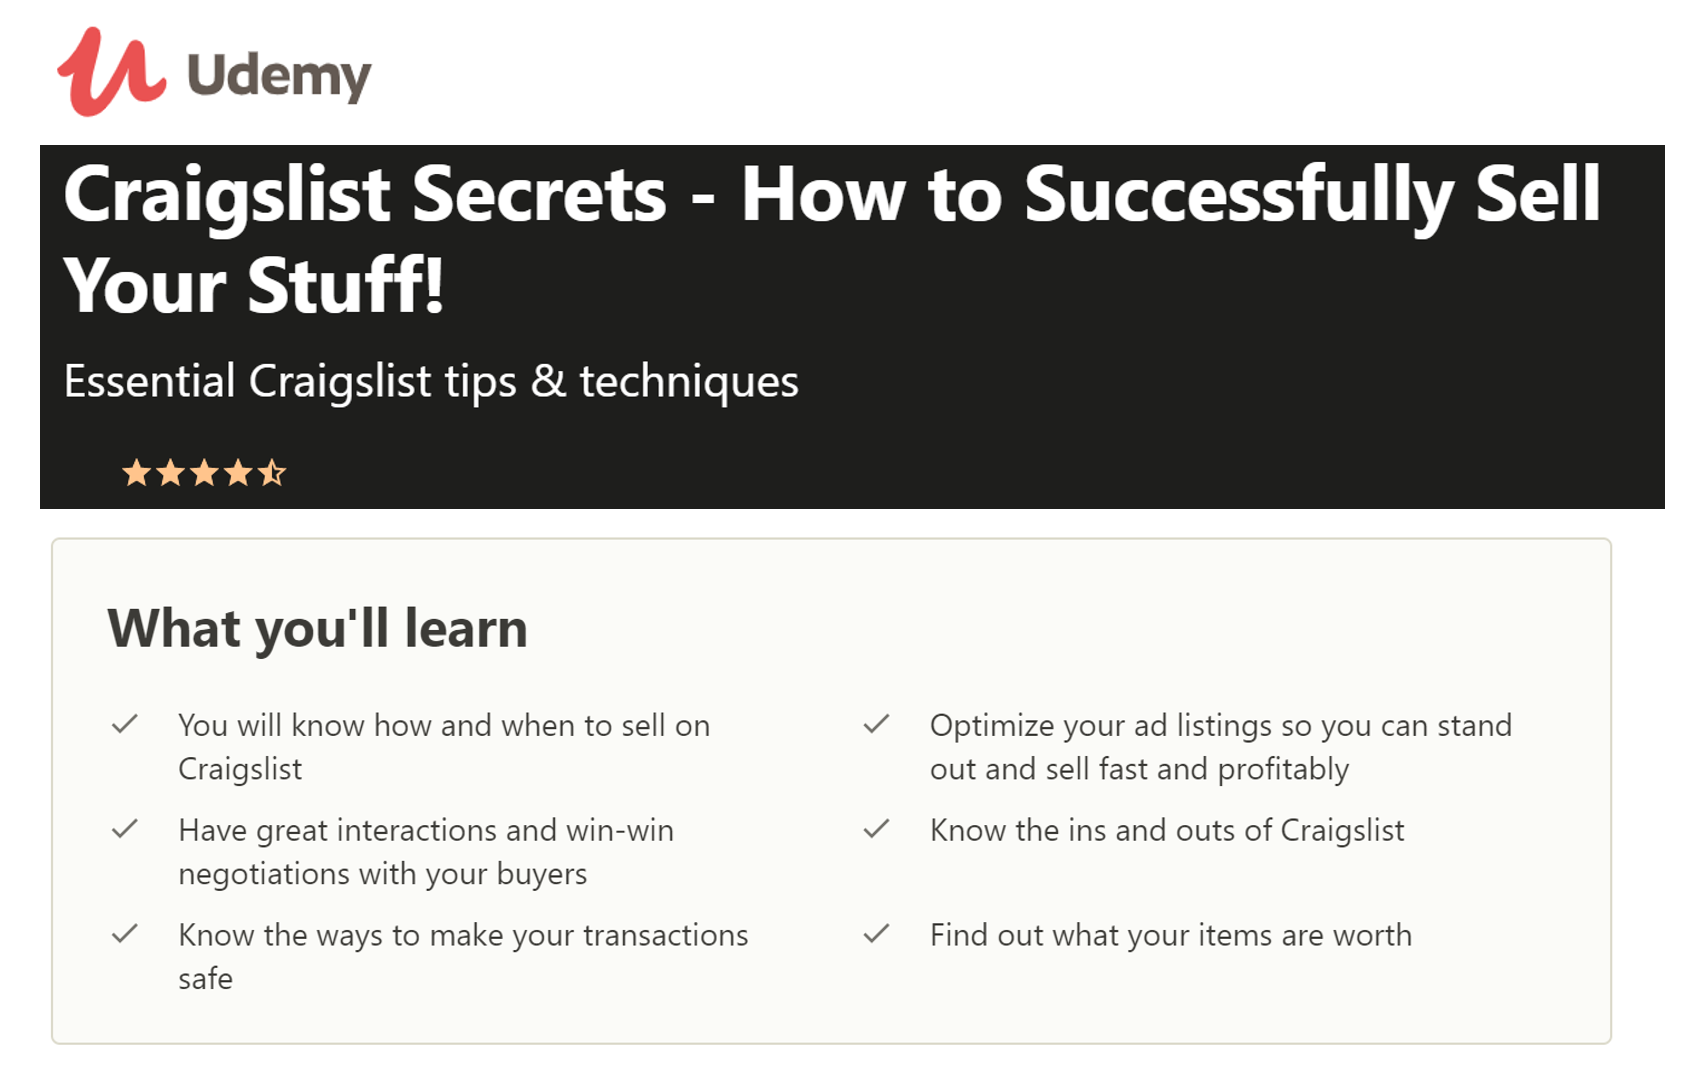 Udemy - Craigslist Secrets - How to Successfully Sell Your Stuff